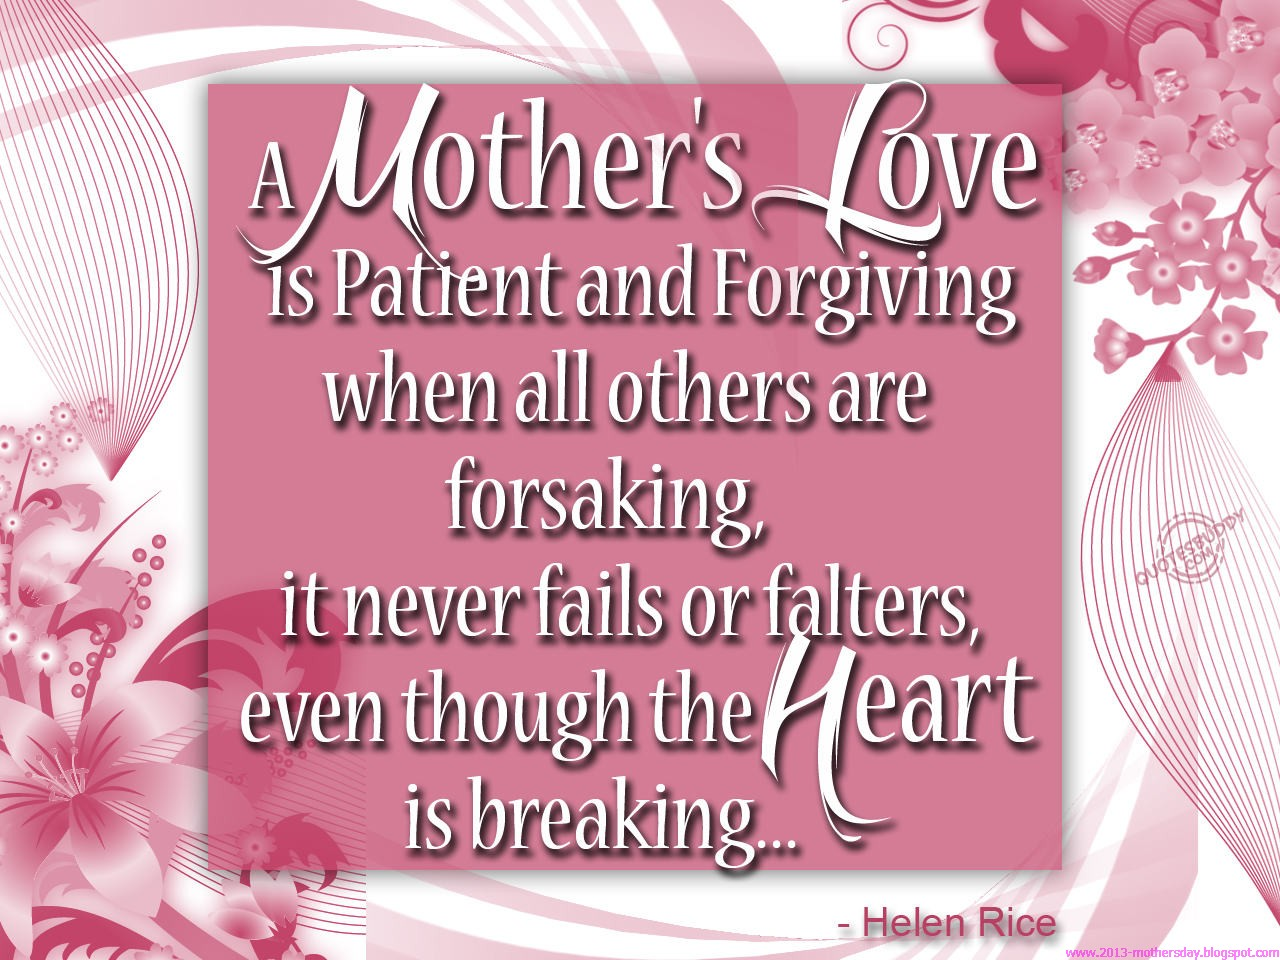 Mothers day 2018 2019 quotes images poems gifts ideas mothers day 2018 2019 quotes images poems gifts ideas messages when is mothers day kristyandbryce Image collections